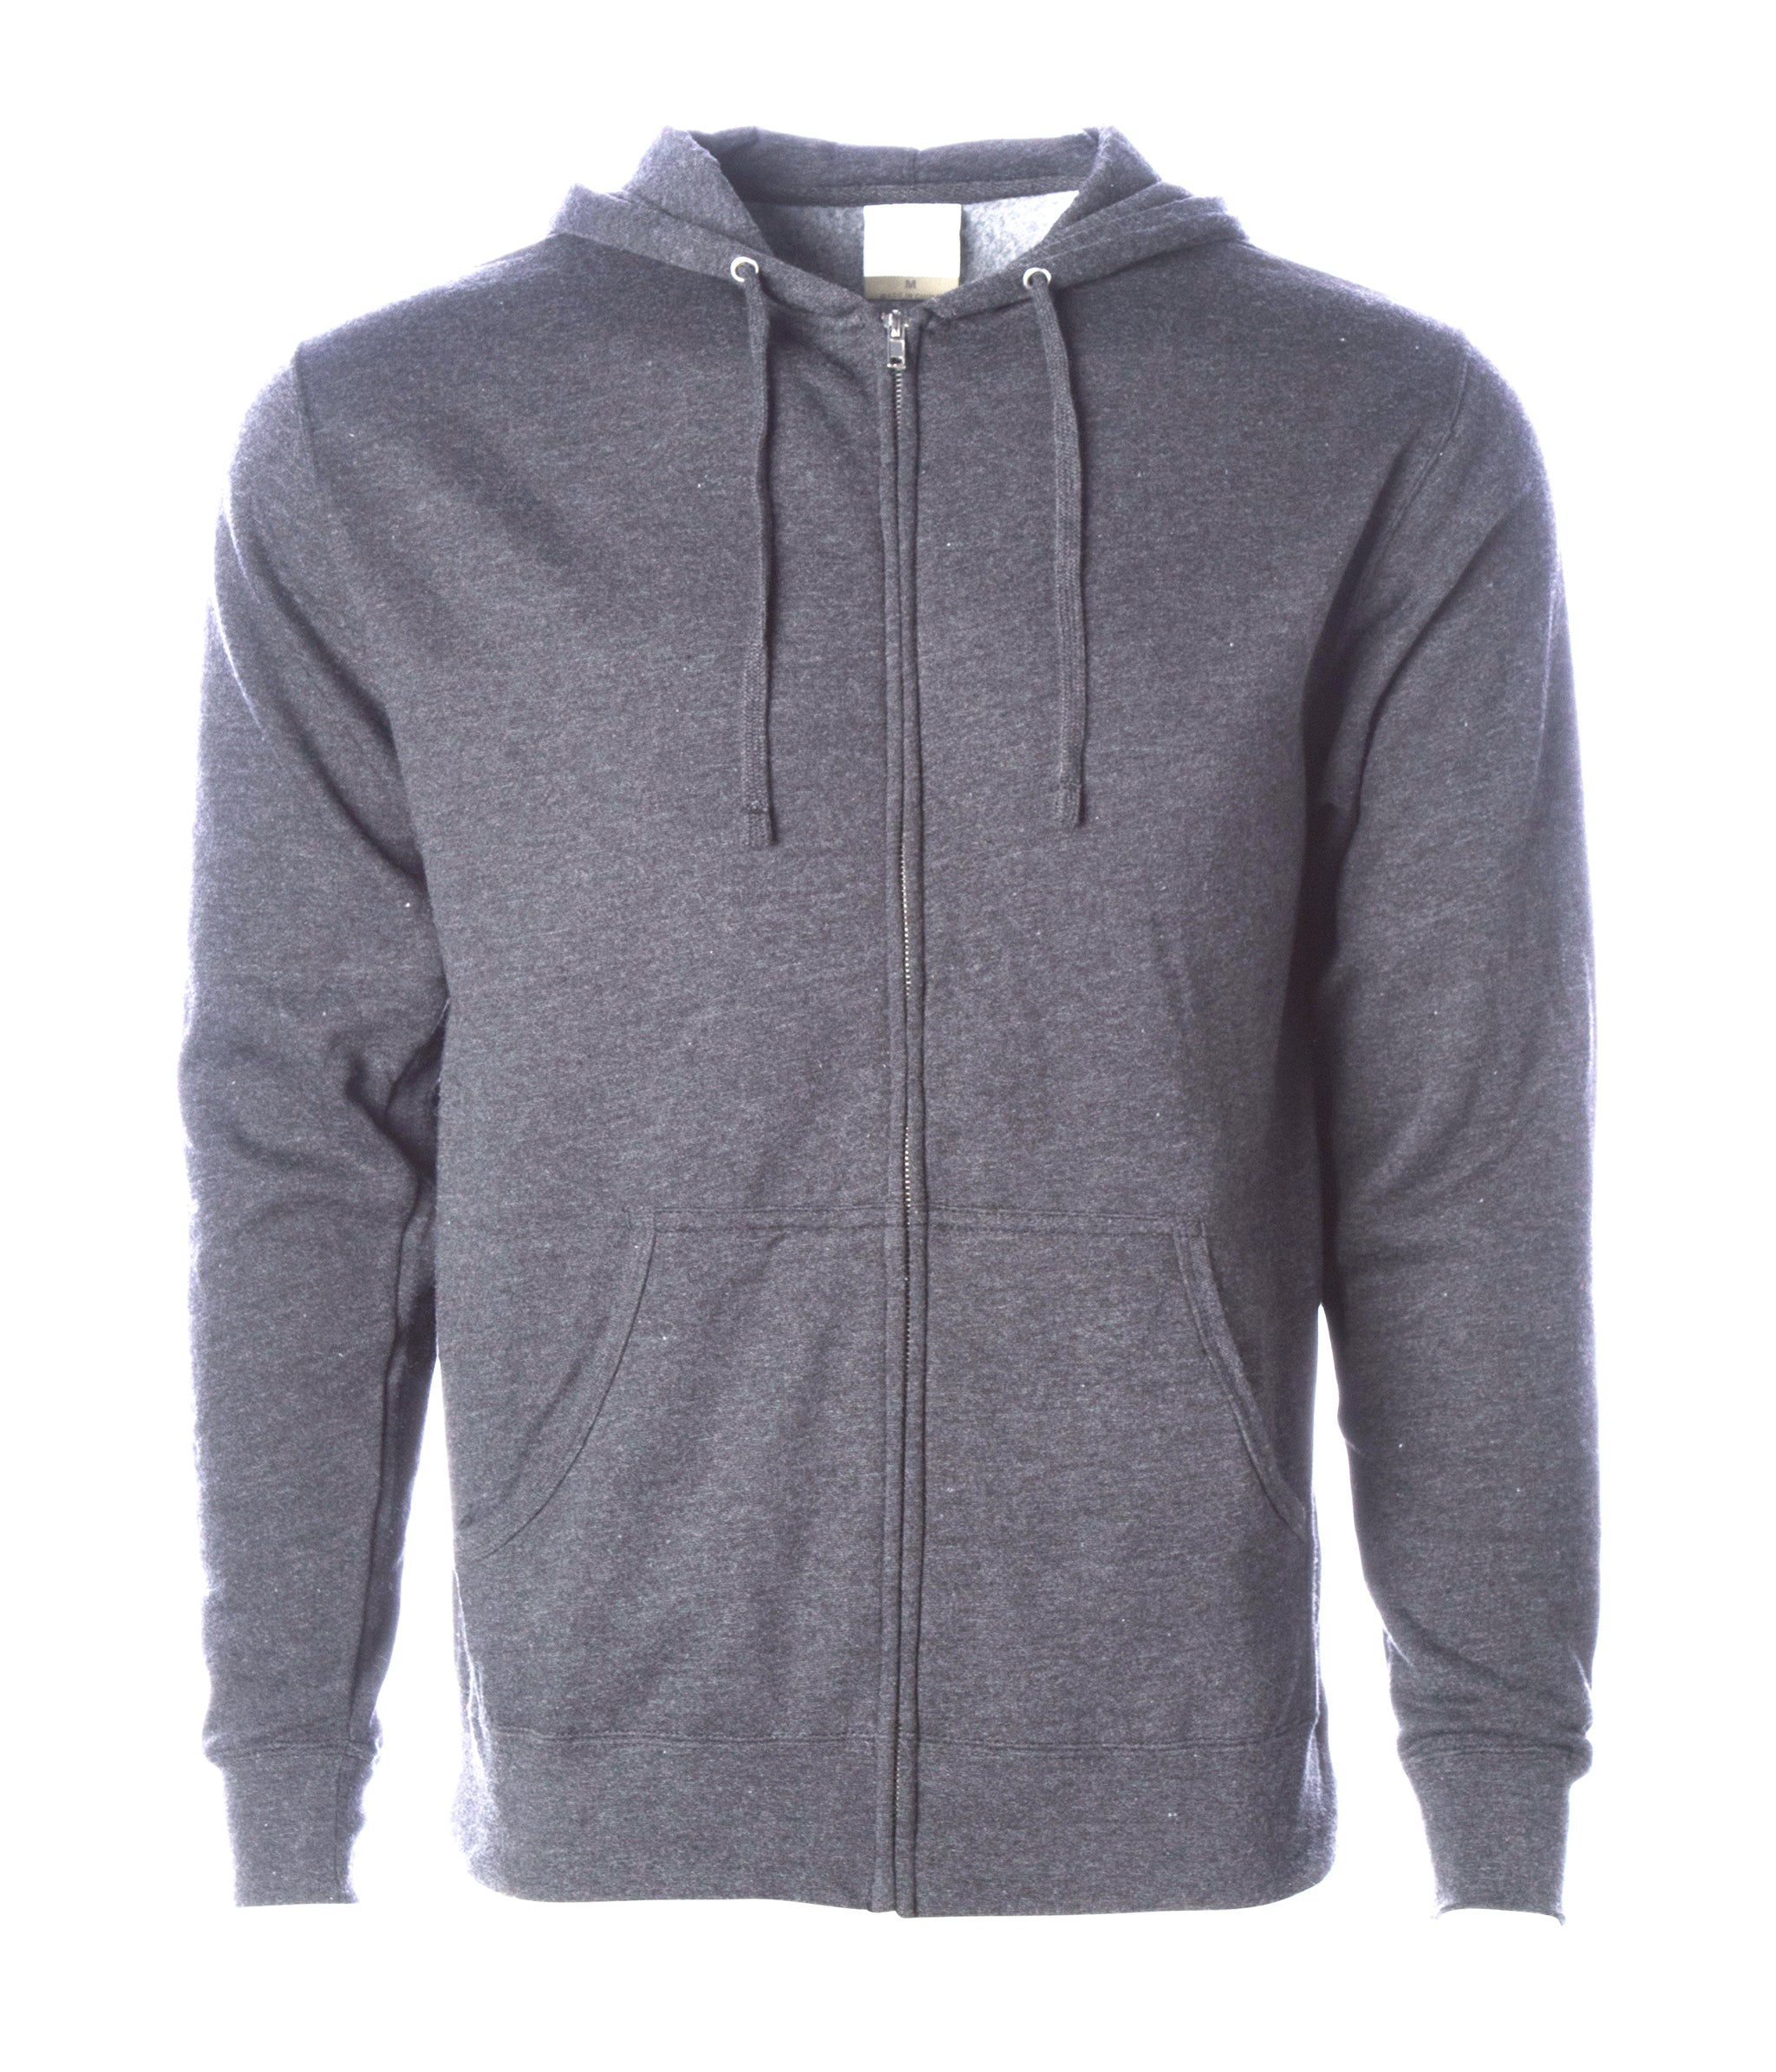 93f69f35e Lightweight Zip Hooded Sweatshirts